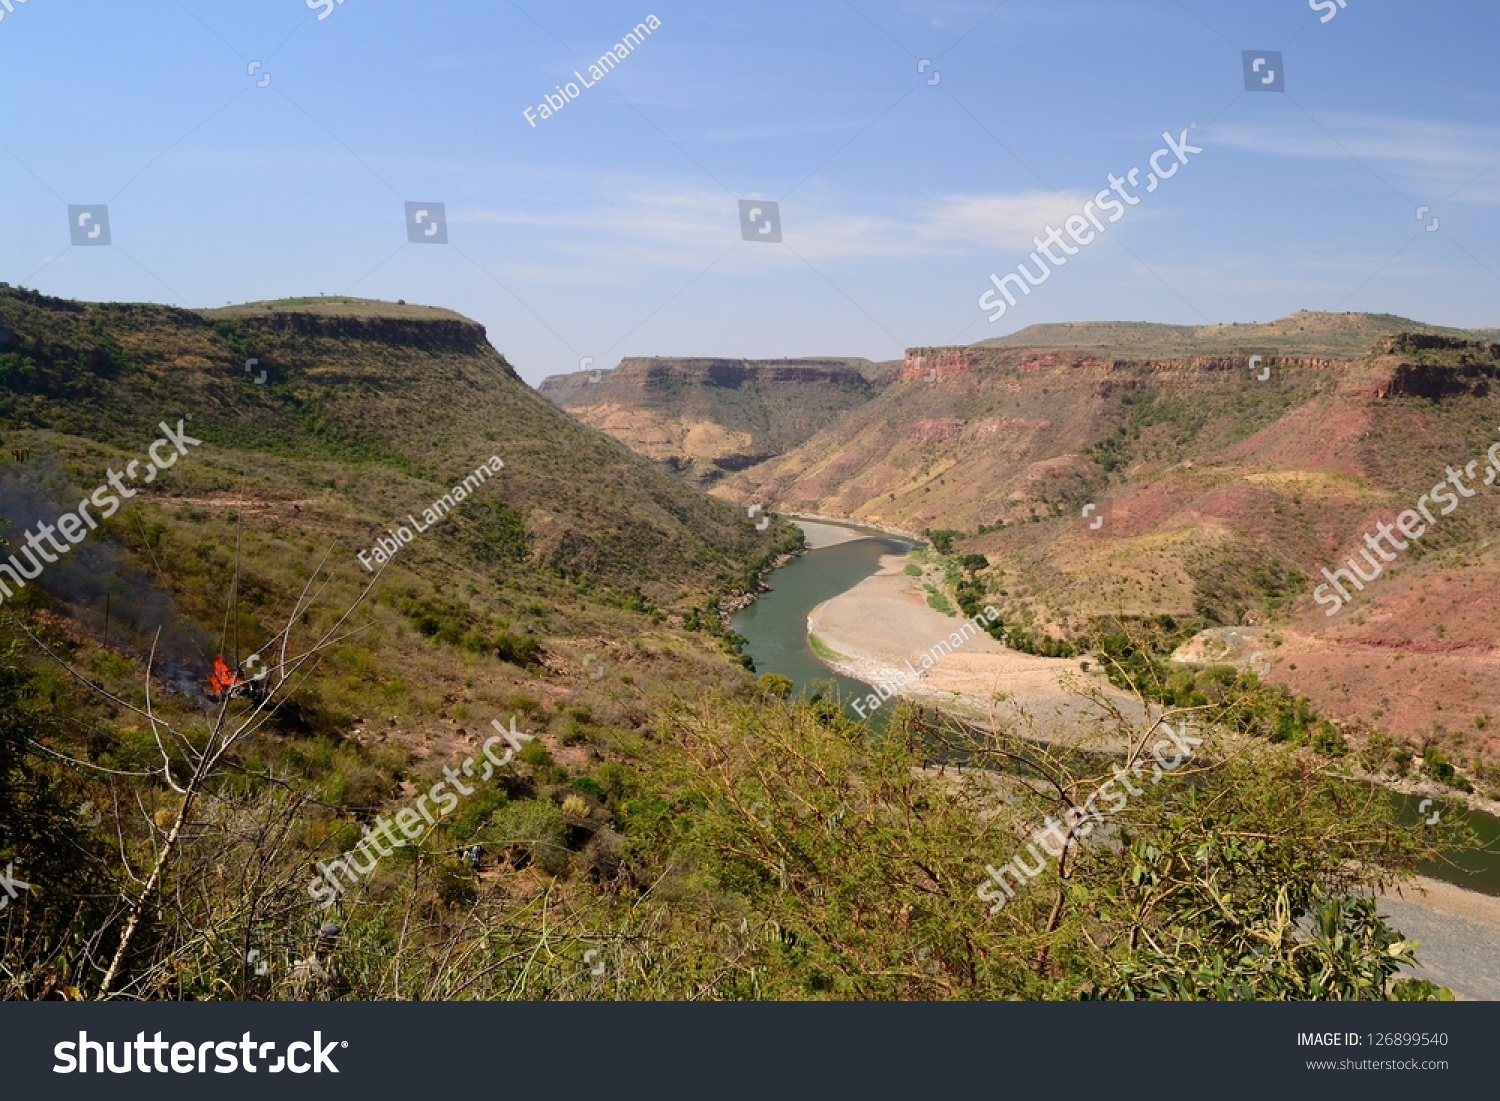 Blue Nile Gorge Northern Ethiopia, Blue Nile Gorge Wide Angle View Stock Photo 126899540 - Shutterstock